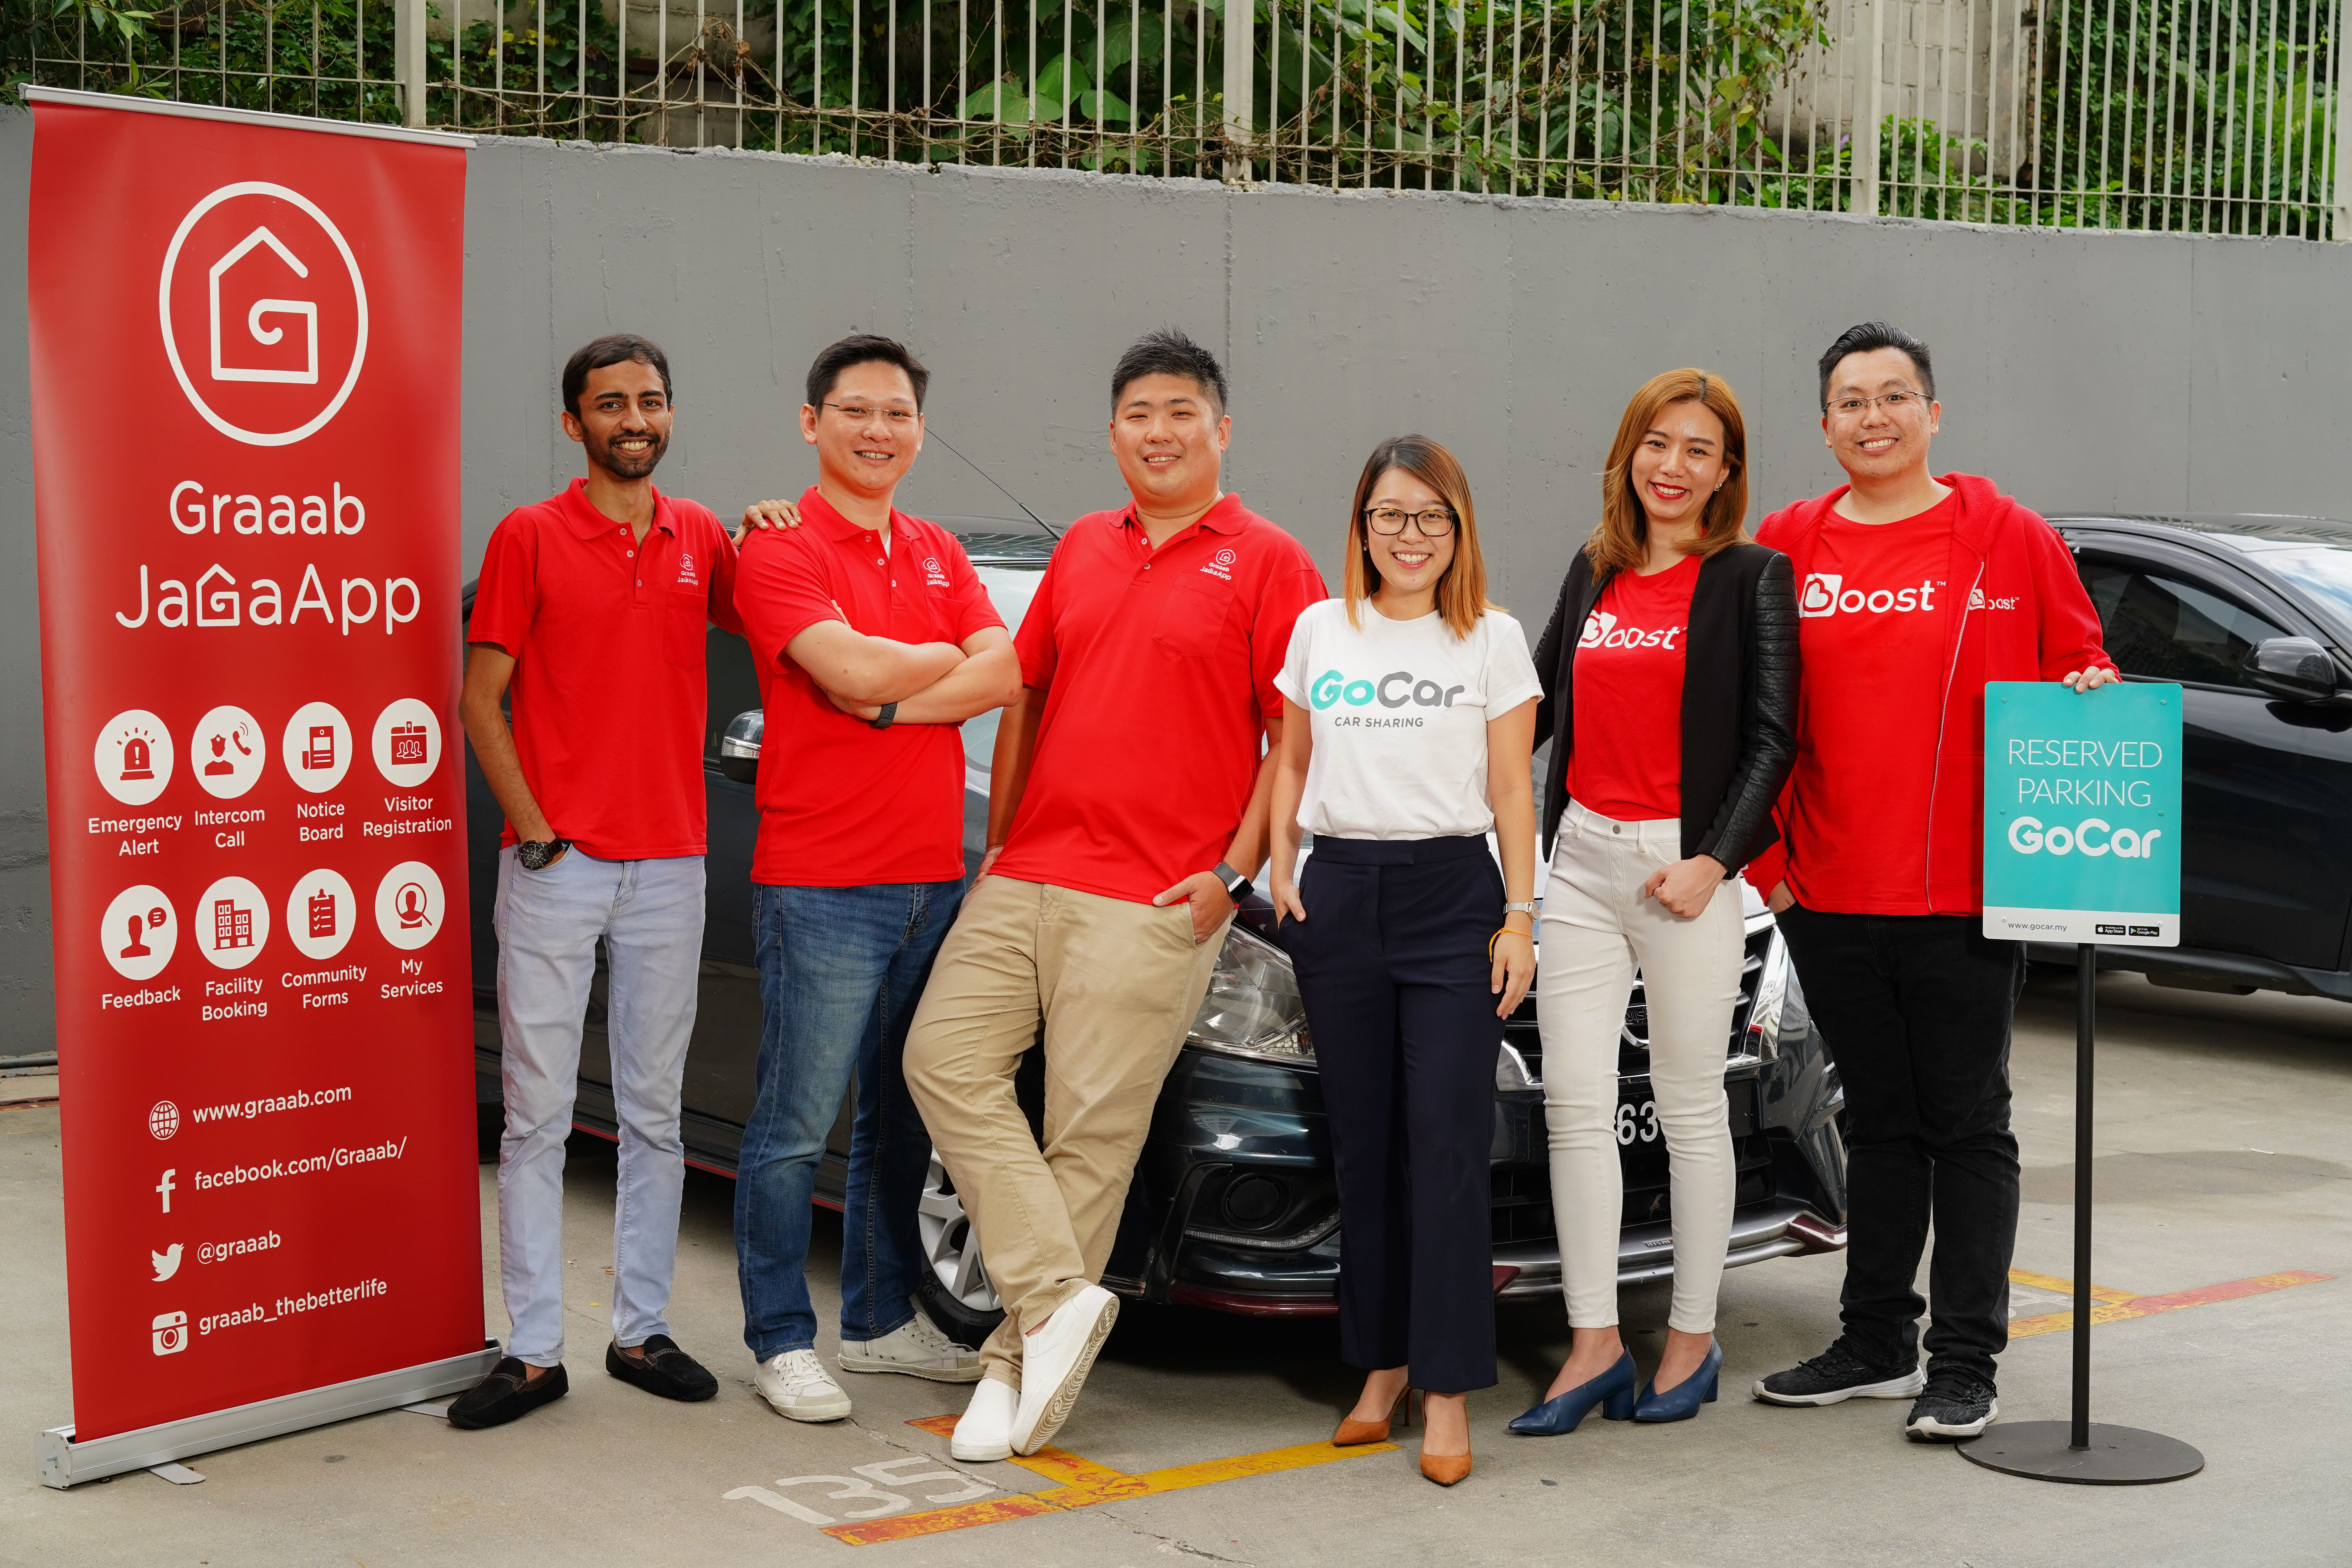 Red Ideas partners GoCar, Boost to provide more community services